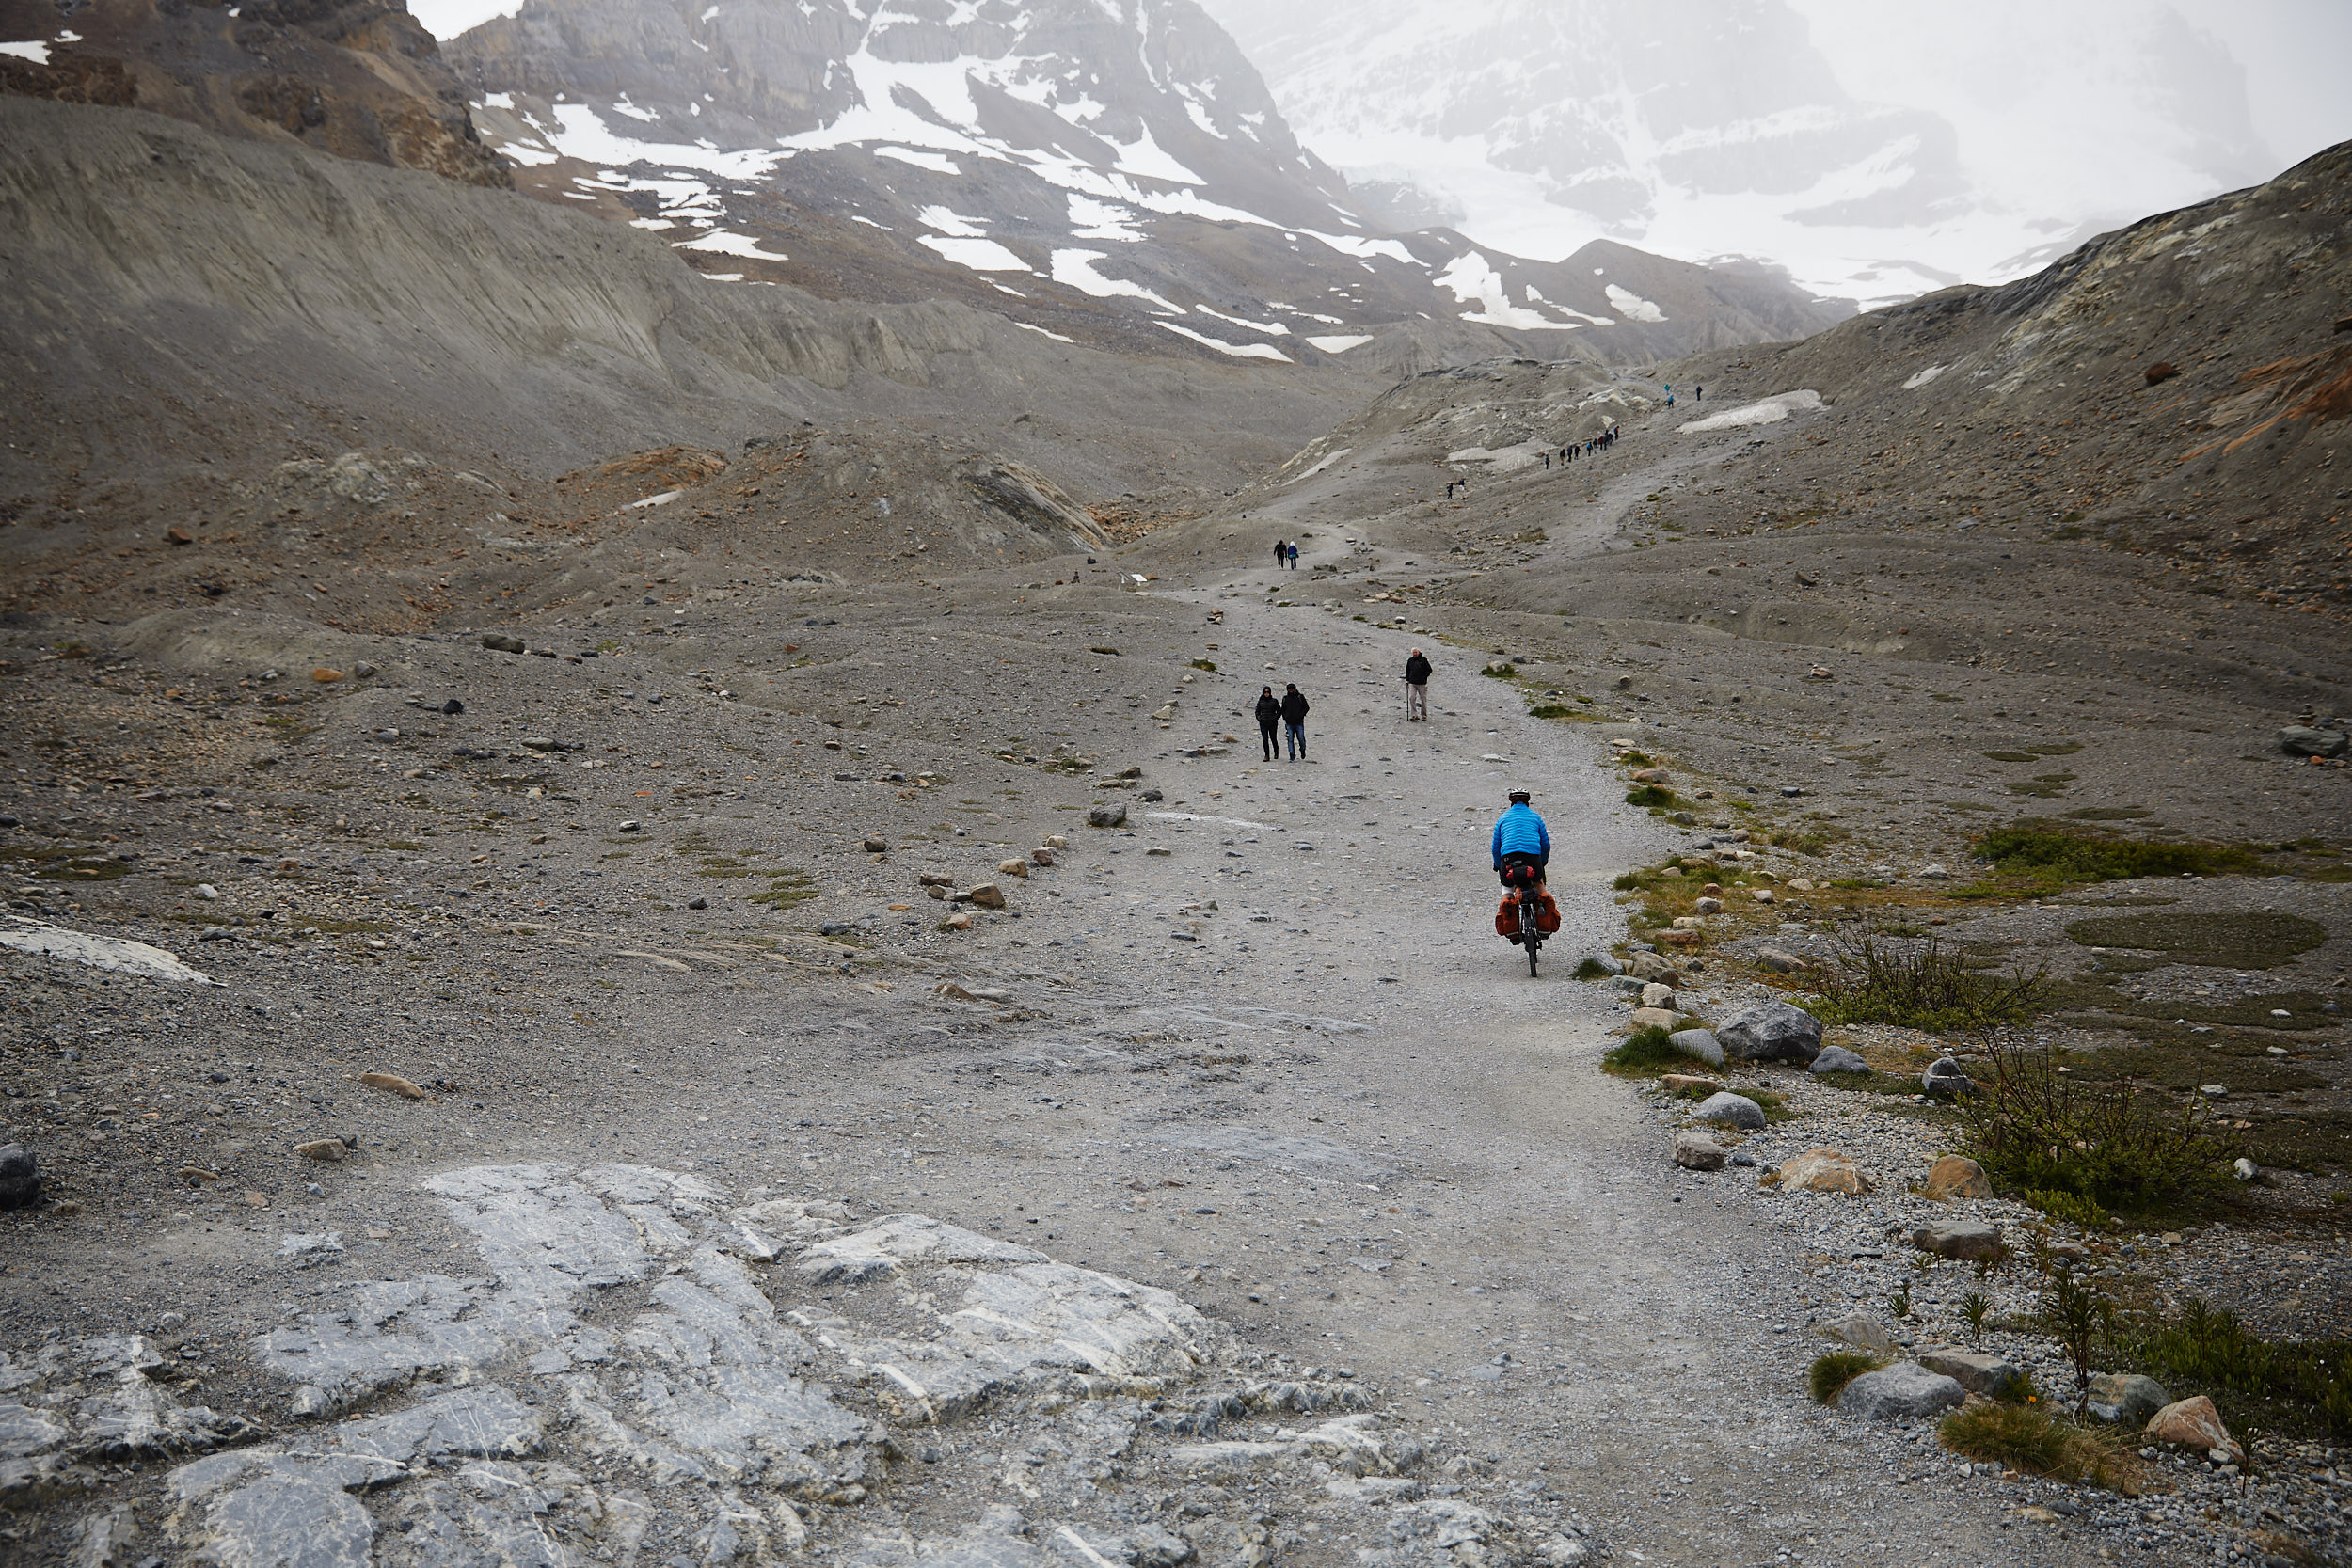 This gravel trail leads up to Athabasca Glacier. Jeff was the only one with tires robust enough to attempt the ride up.